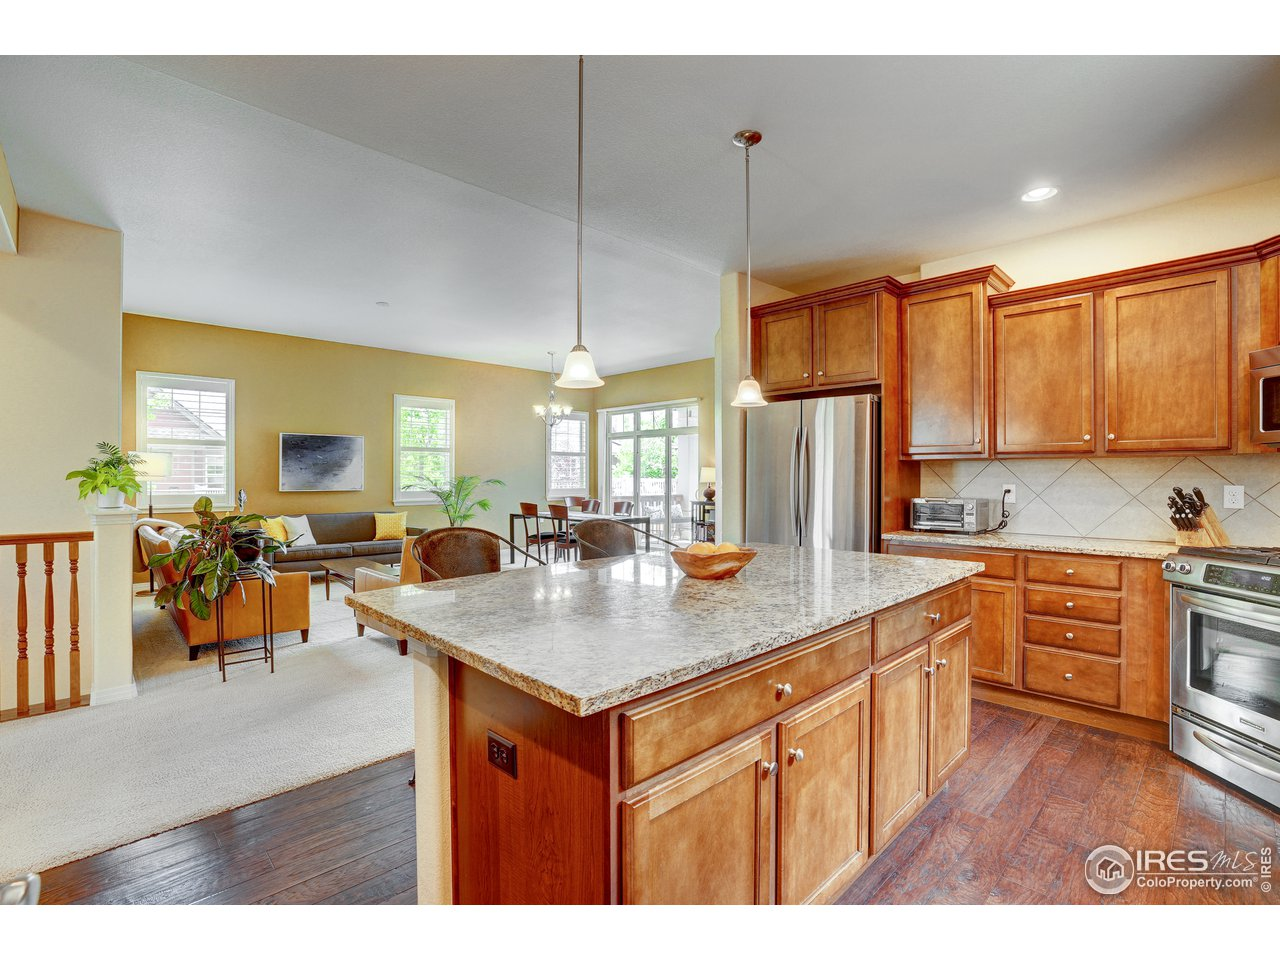 Gorgeous kitchen with granite countertops and gas range.